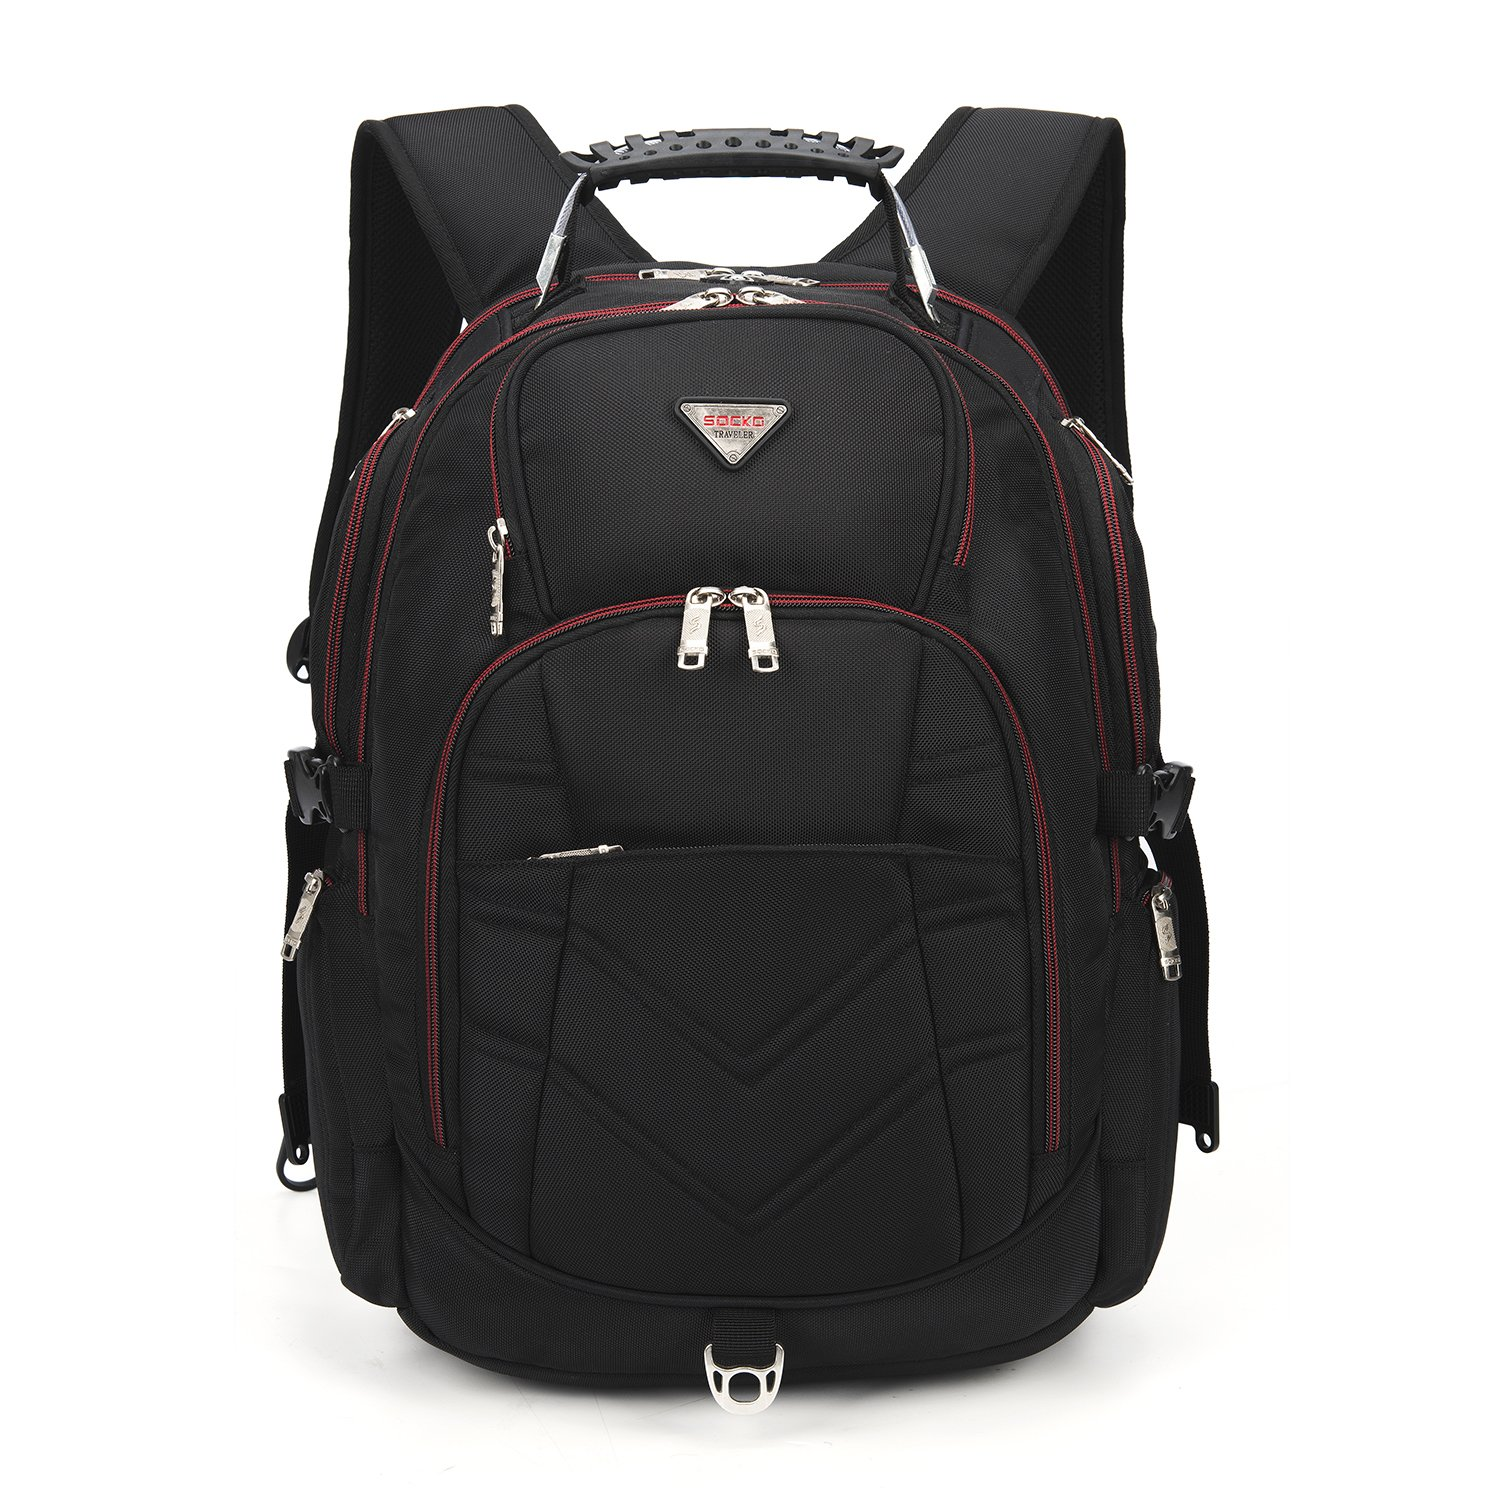 Large Capacity Travel Camping Backpack 17.3 Inch Waterproof Laptop Bag  Muti-Pockets Durable School College Bag Business Daypacks Men s Sports  Hiking ... 5e95740746eb2